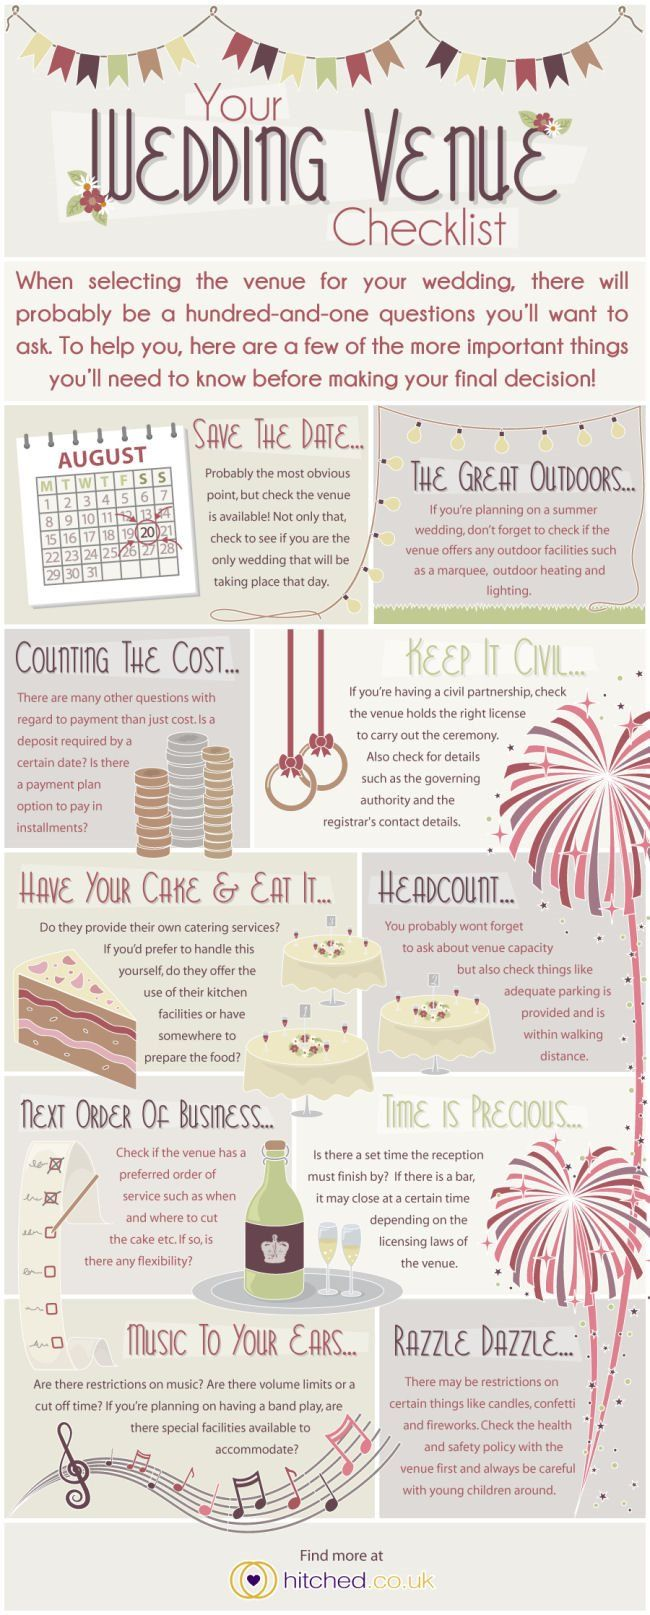 Your Wedding Venue Checklist {Infographic}